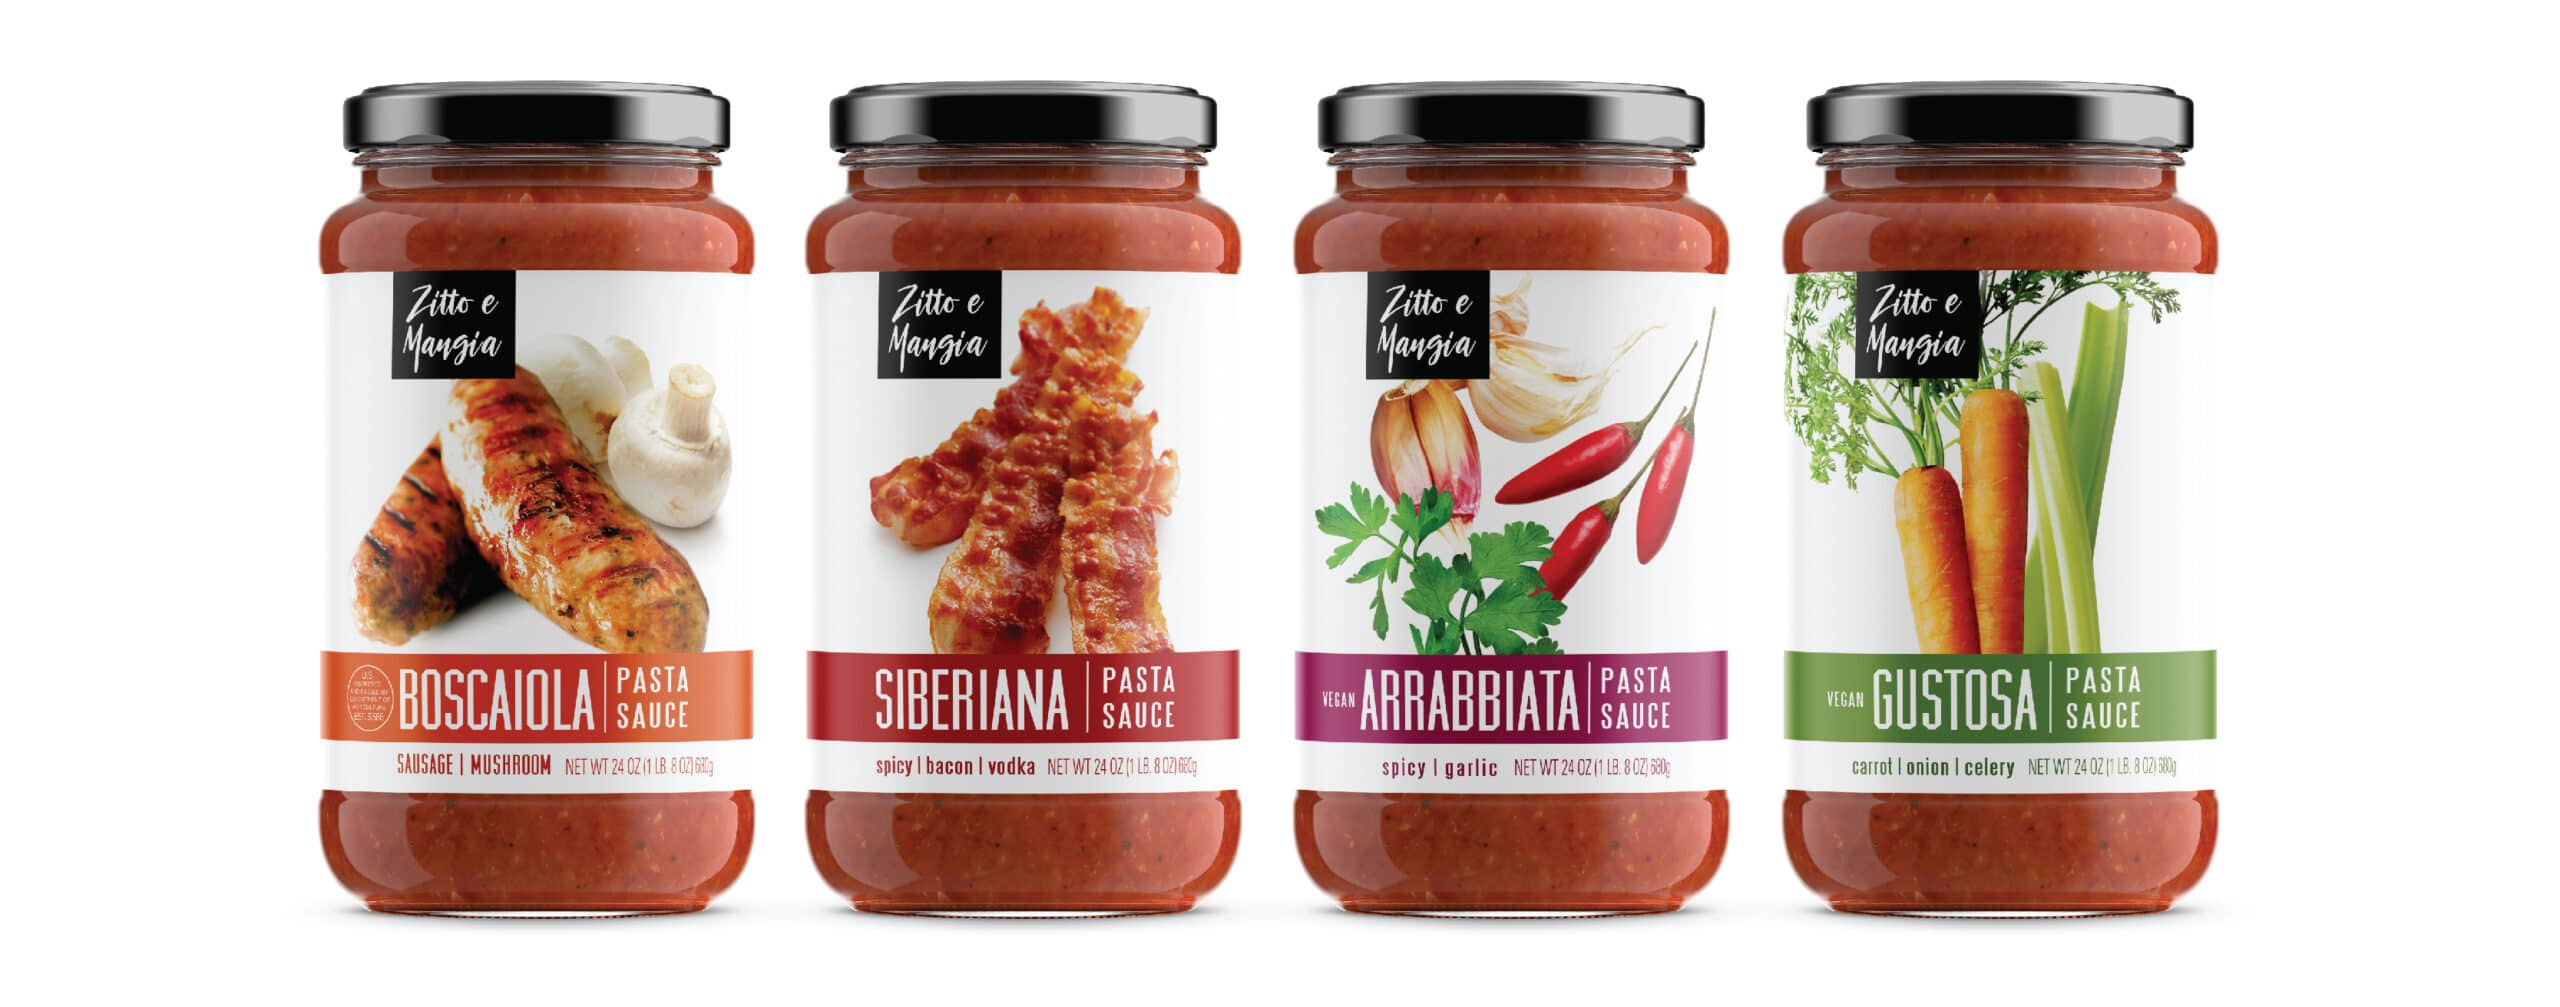 Pasta Sauce Jar Packaging Design